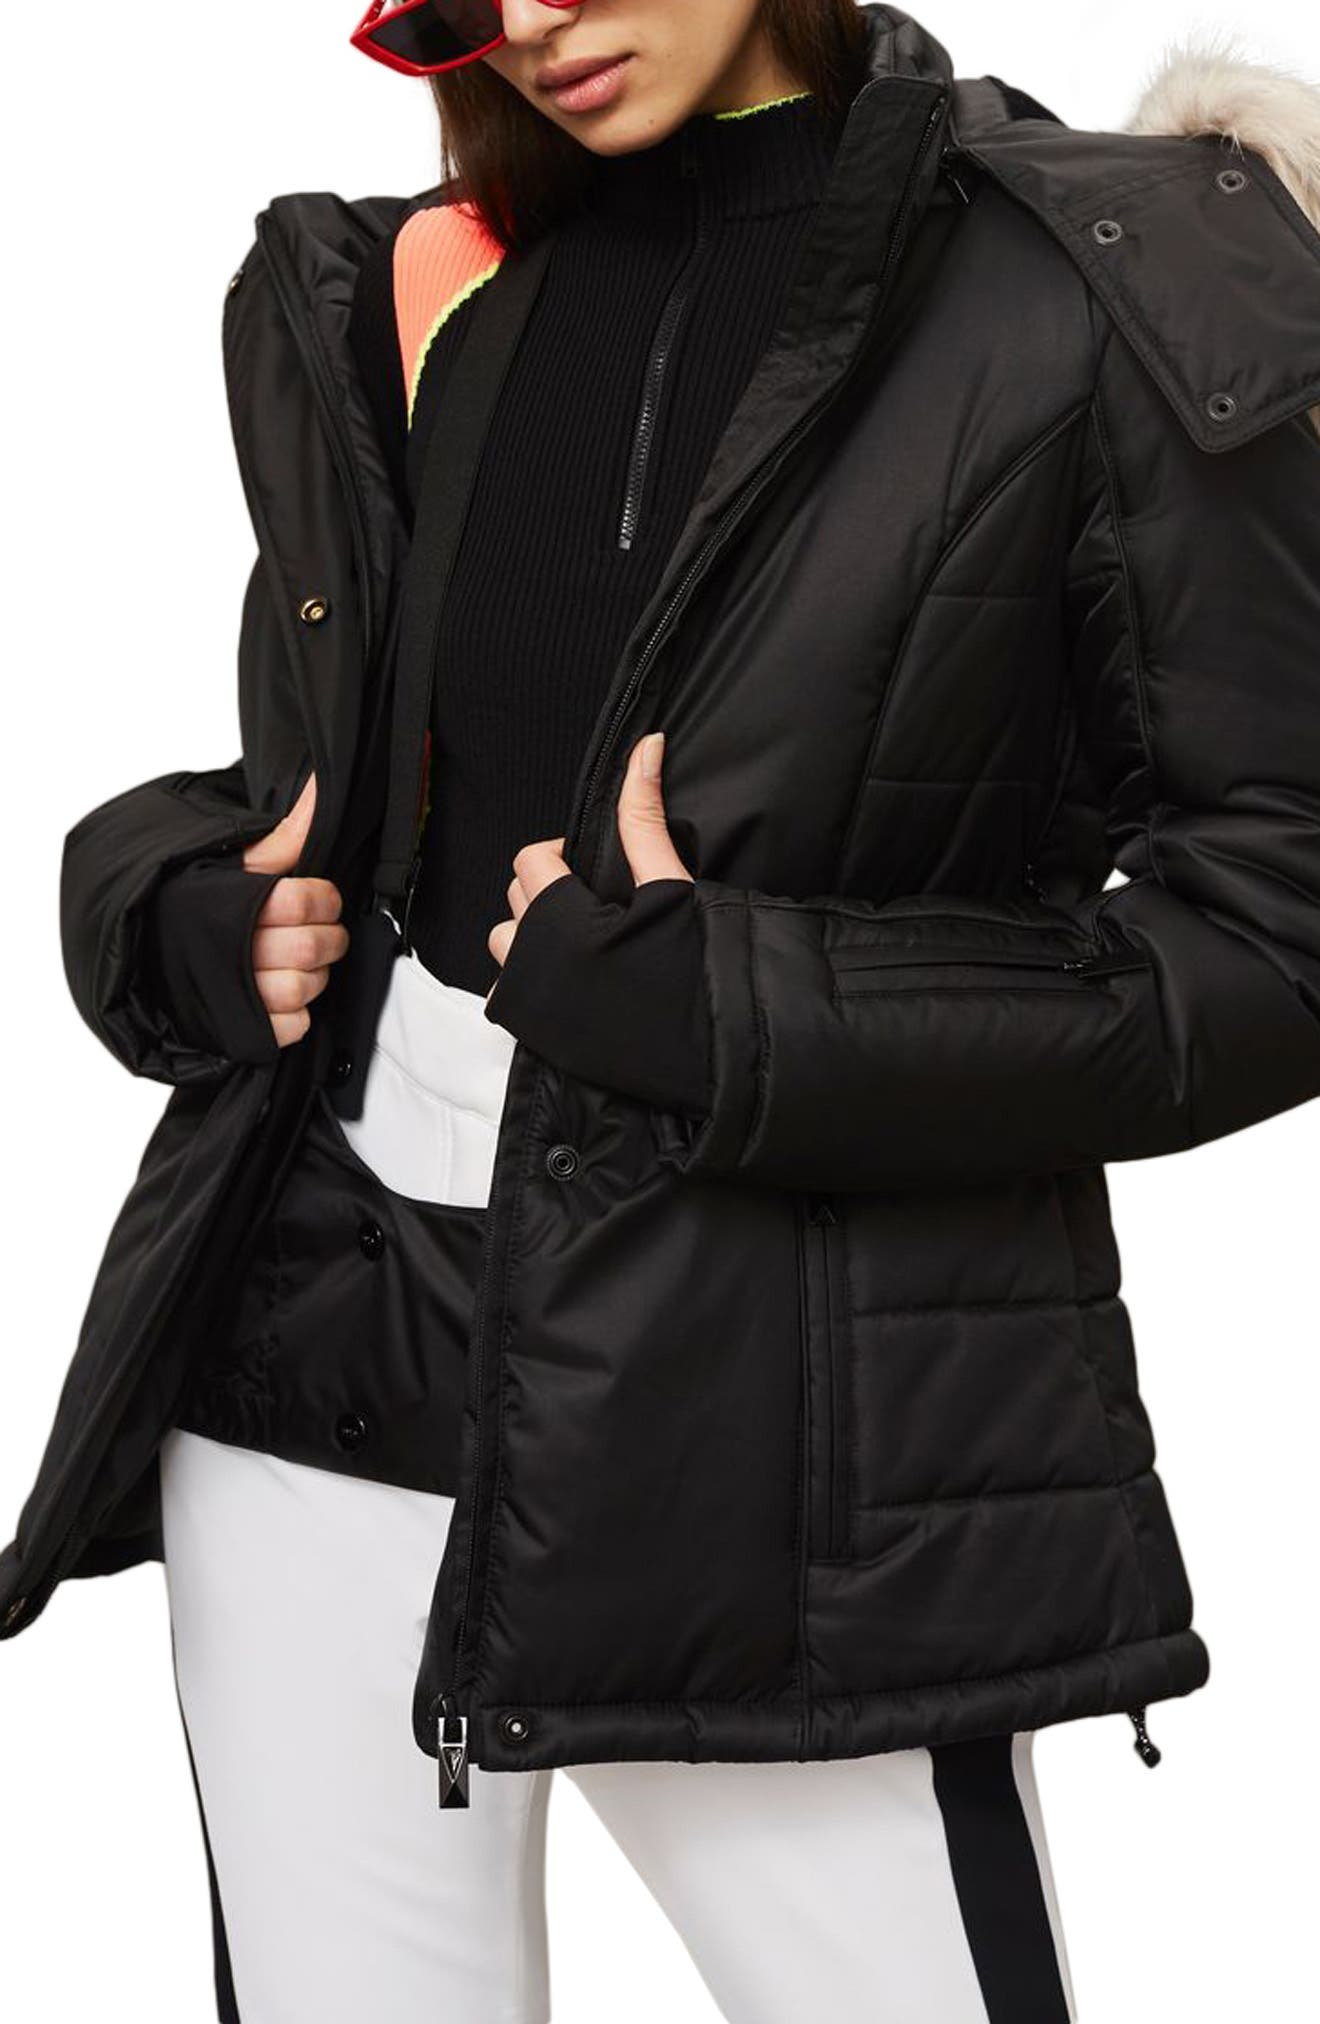 Topshop SNO Amazon Puffer Jacket